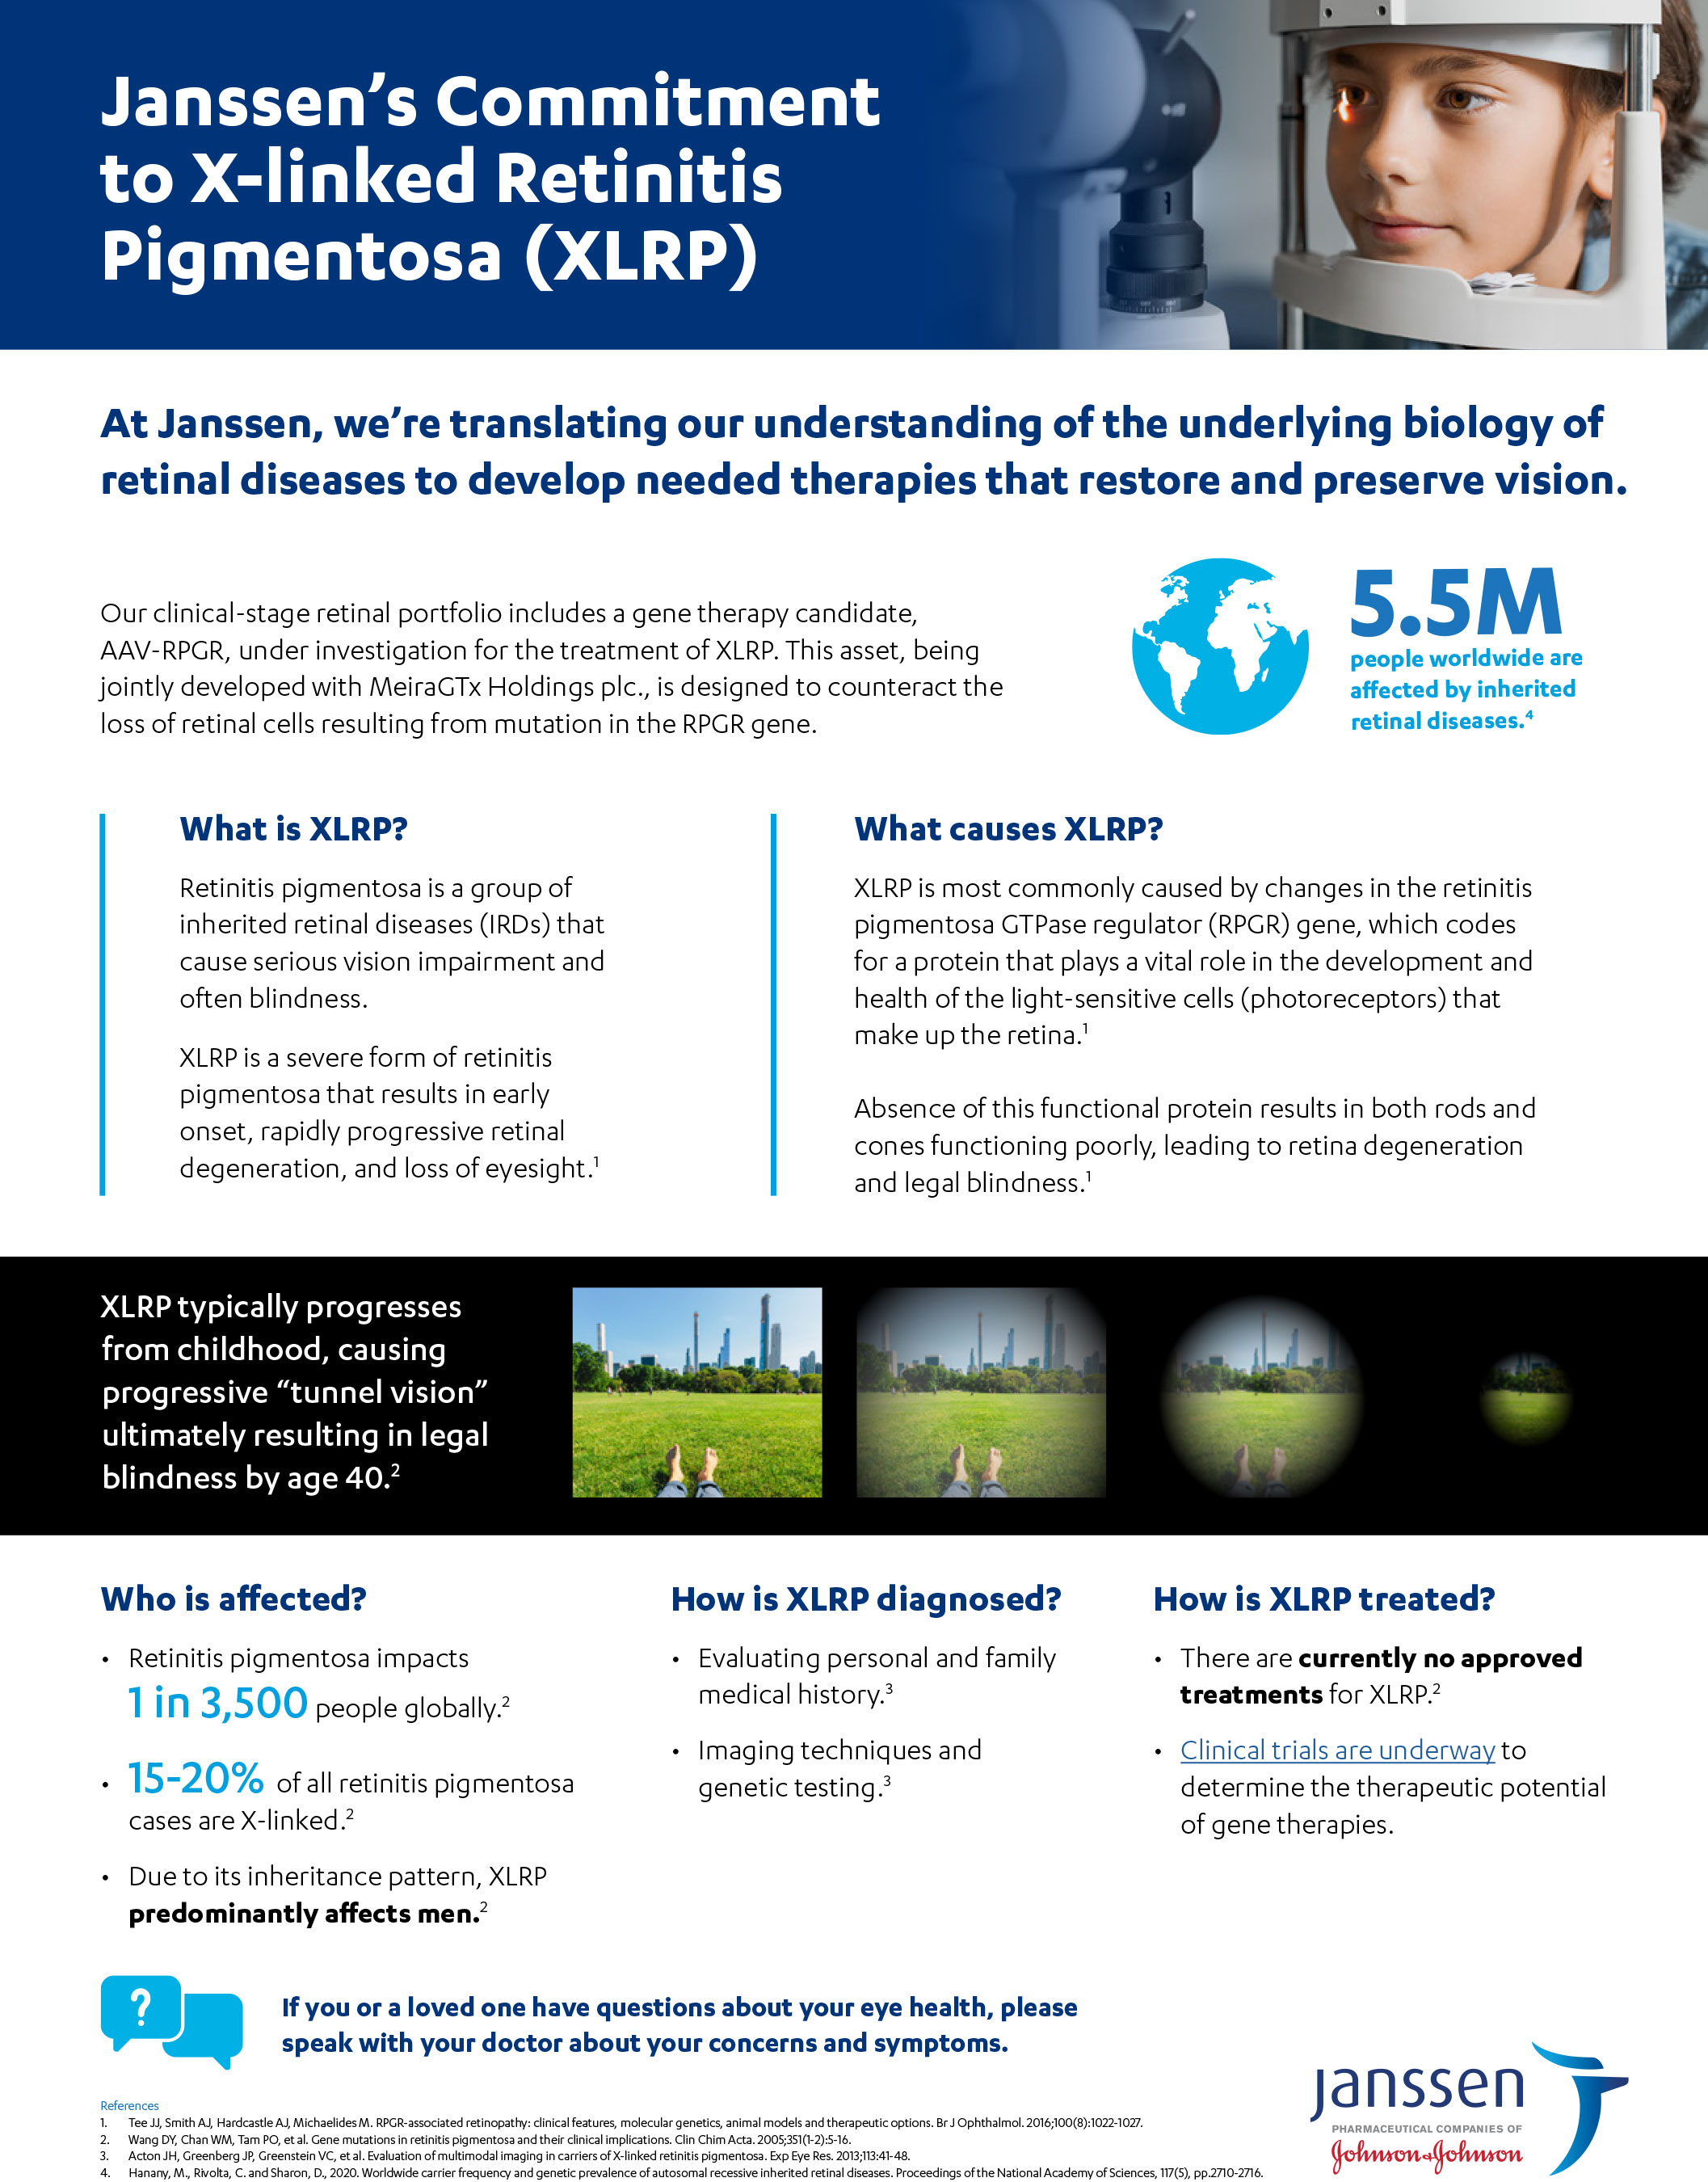 Janssen's Commitment to X-linked Retinitis Pigmentosa (XLRP) Fact Sheet